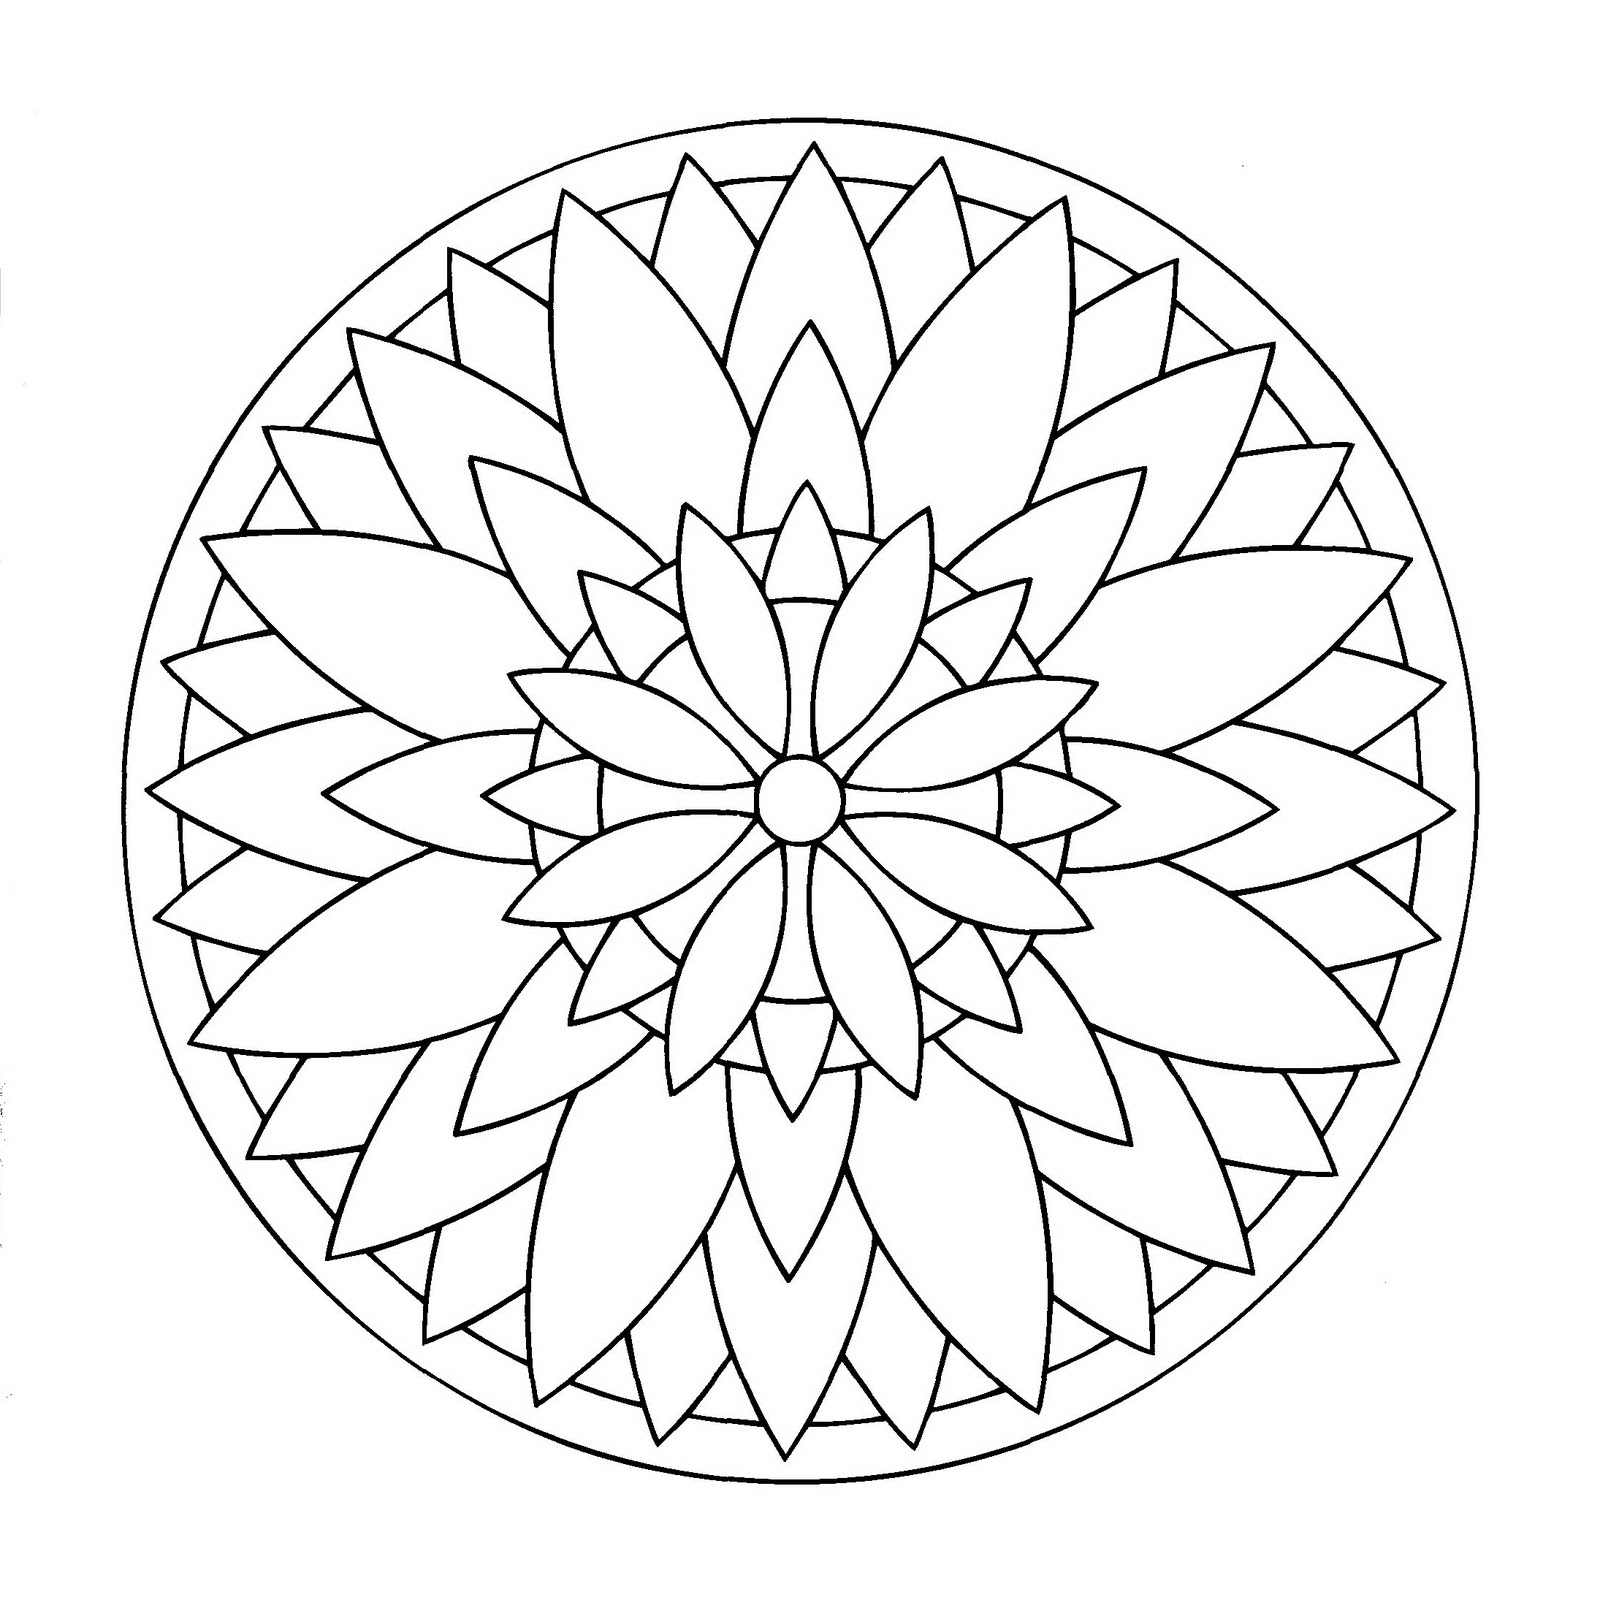 Mandala to color flowers vegetation to print 8 | Mandalas with ...